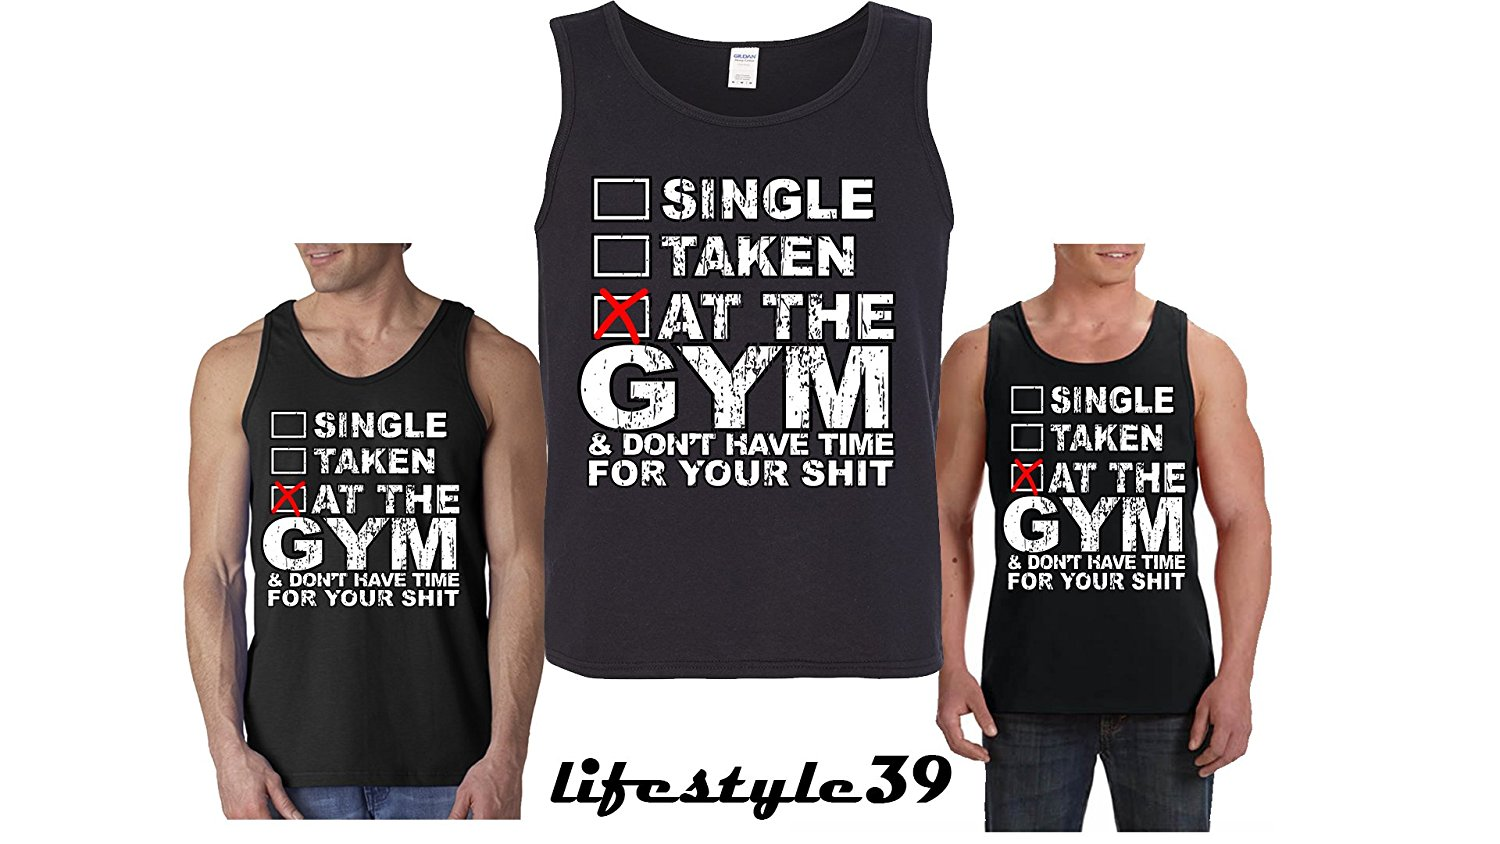 67b7c7b4e8 Get Quotations · Single Taken At The Gym Tank Tops Gym Tank Tops Funny  Men's Workout Shirts Funny Shirts